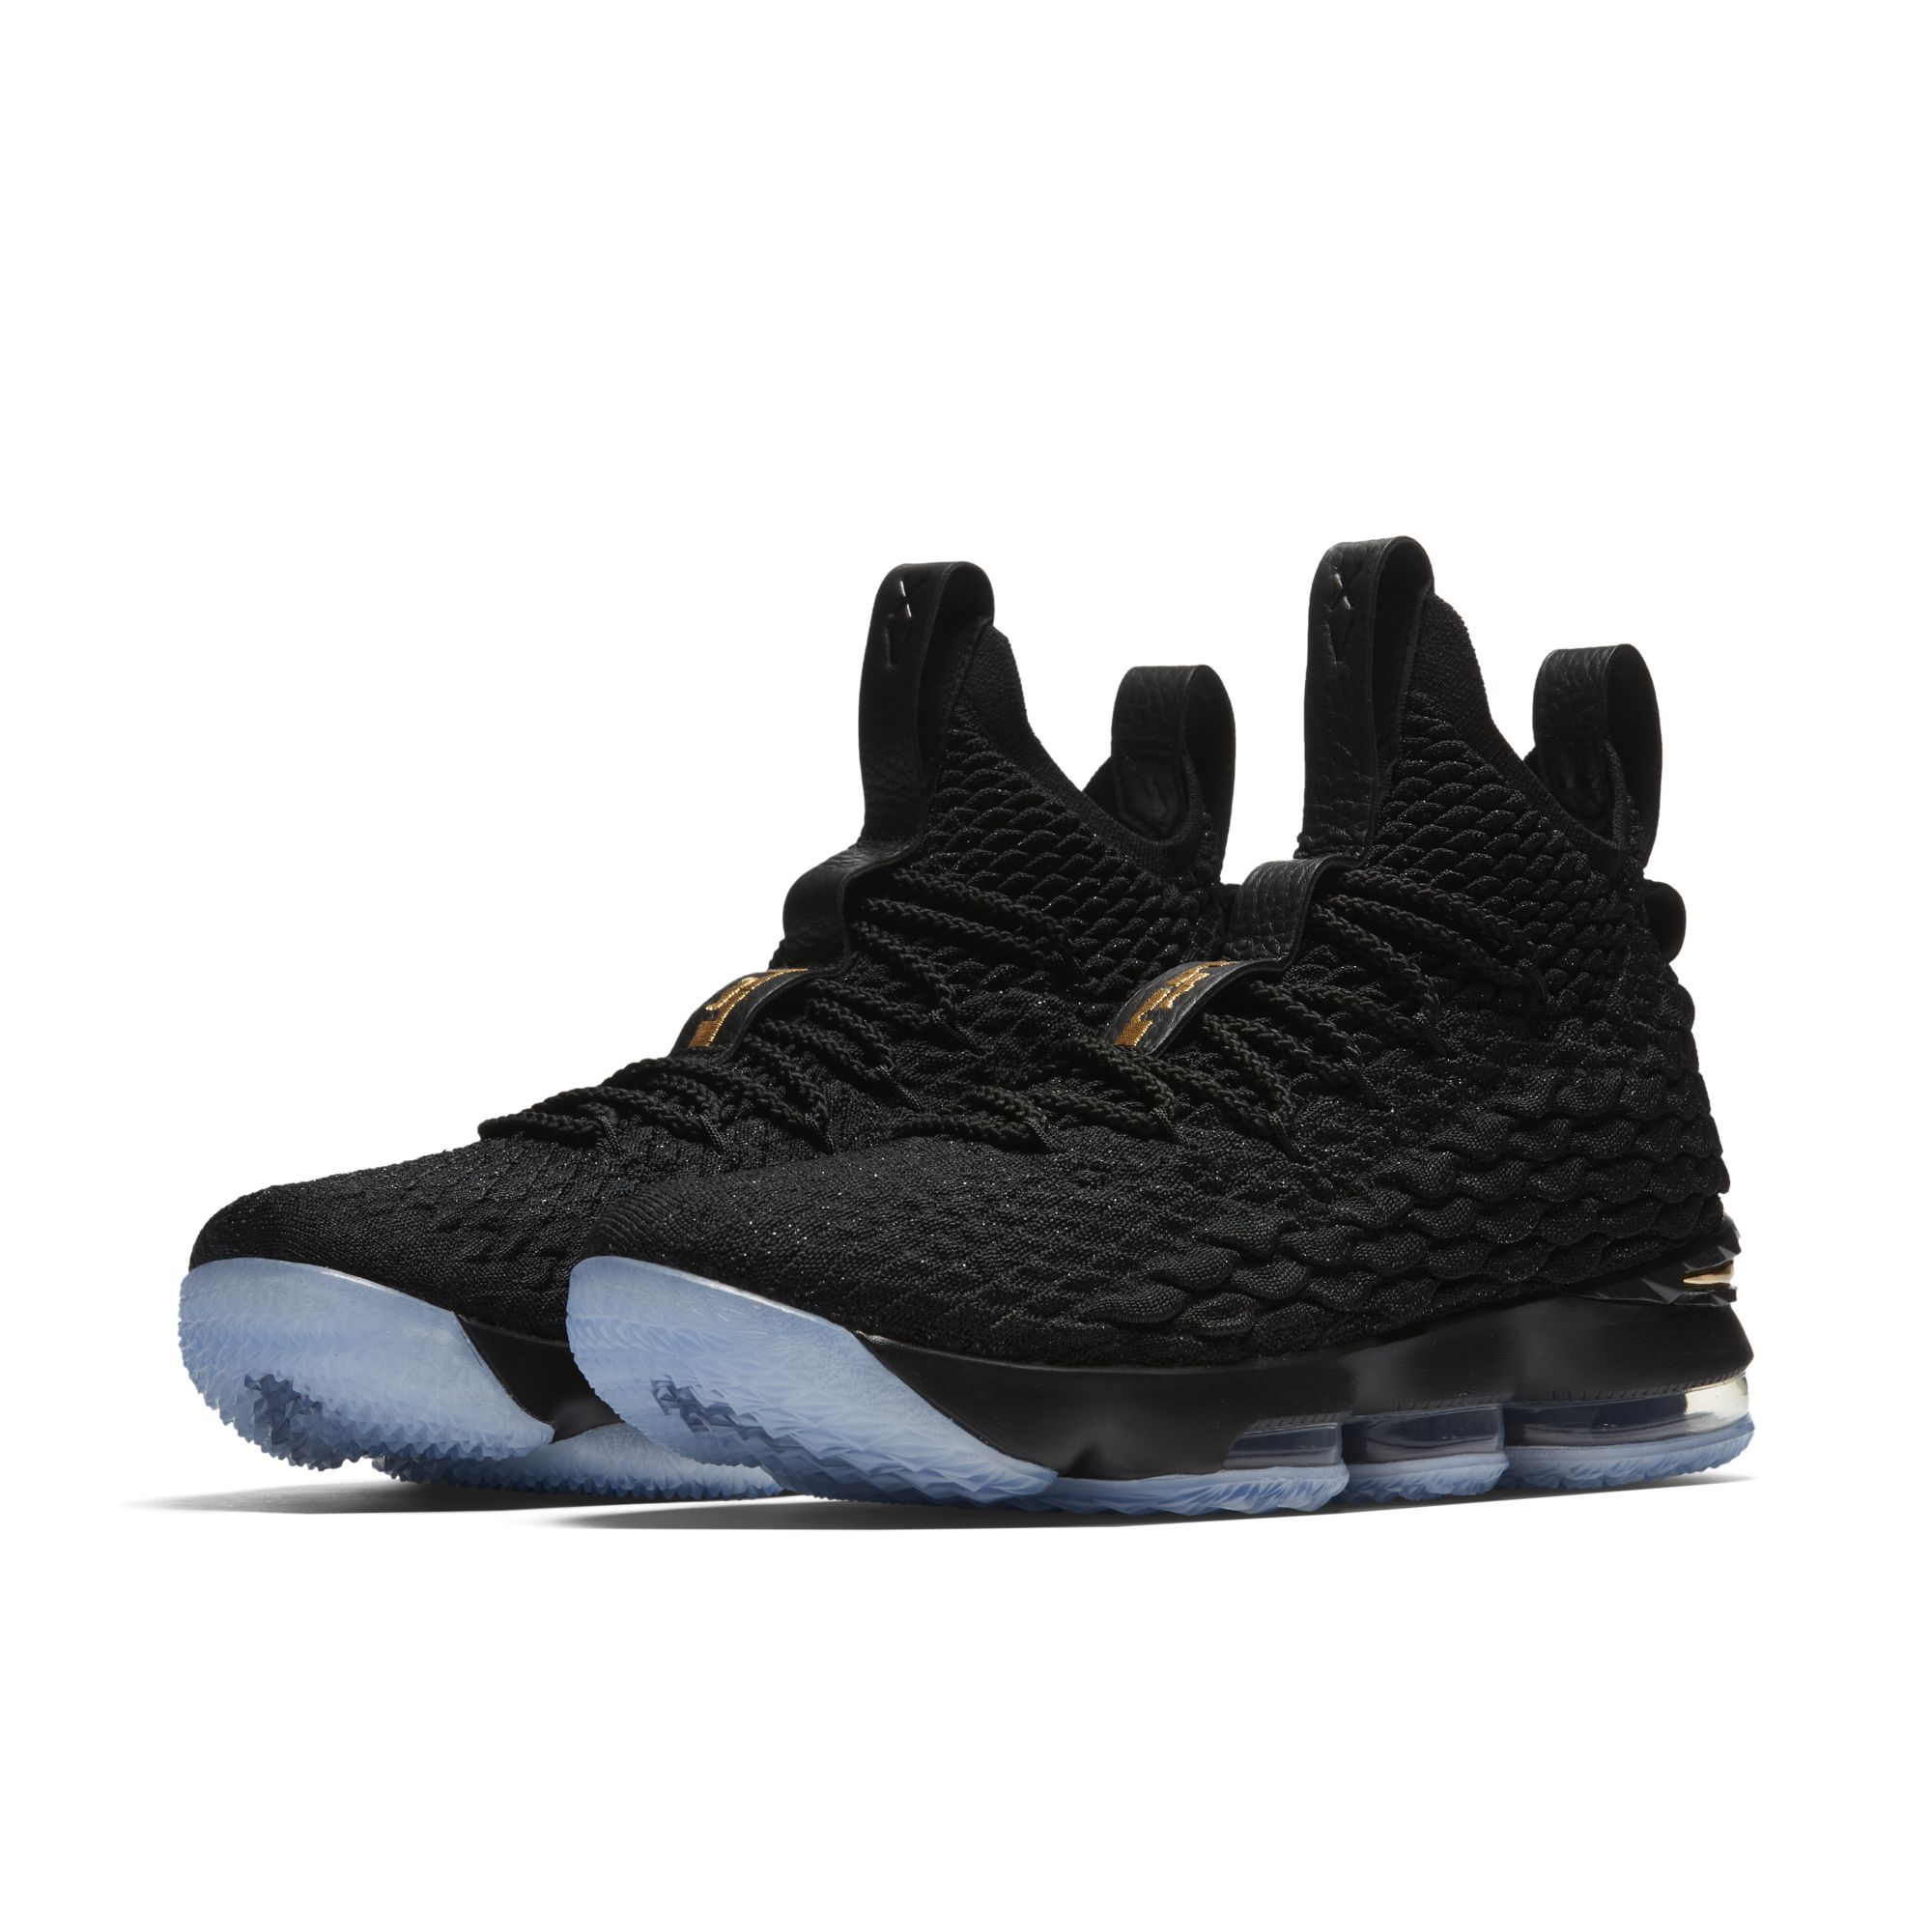 pretty nice 9921f c0eba The Nike LeBron 15 'Black/Gold' Releases in One Week ...